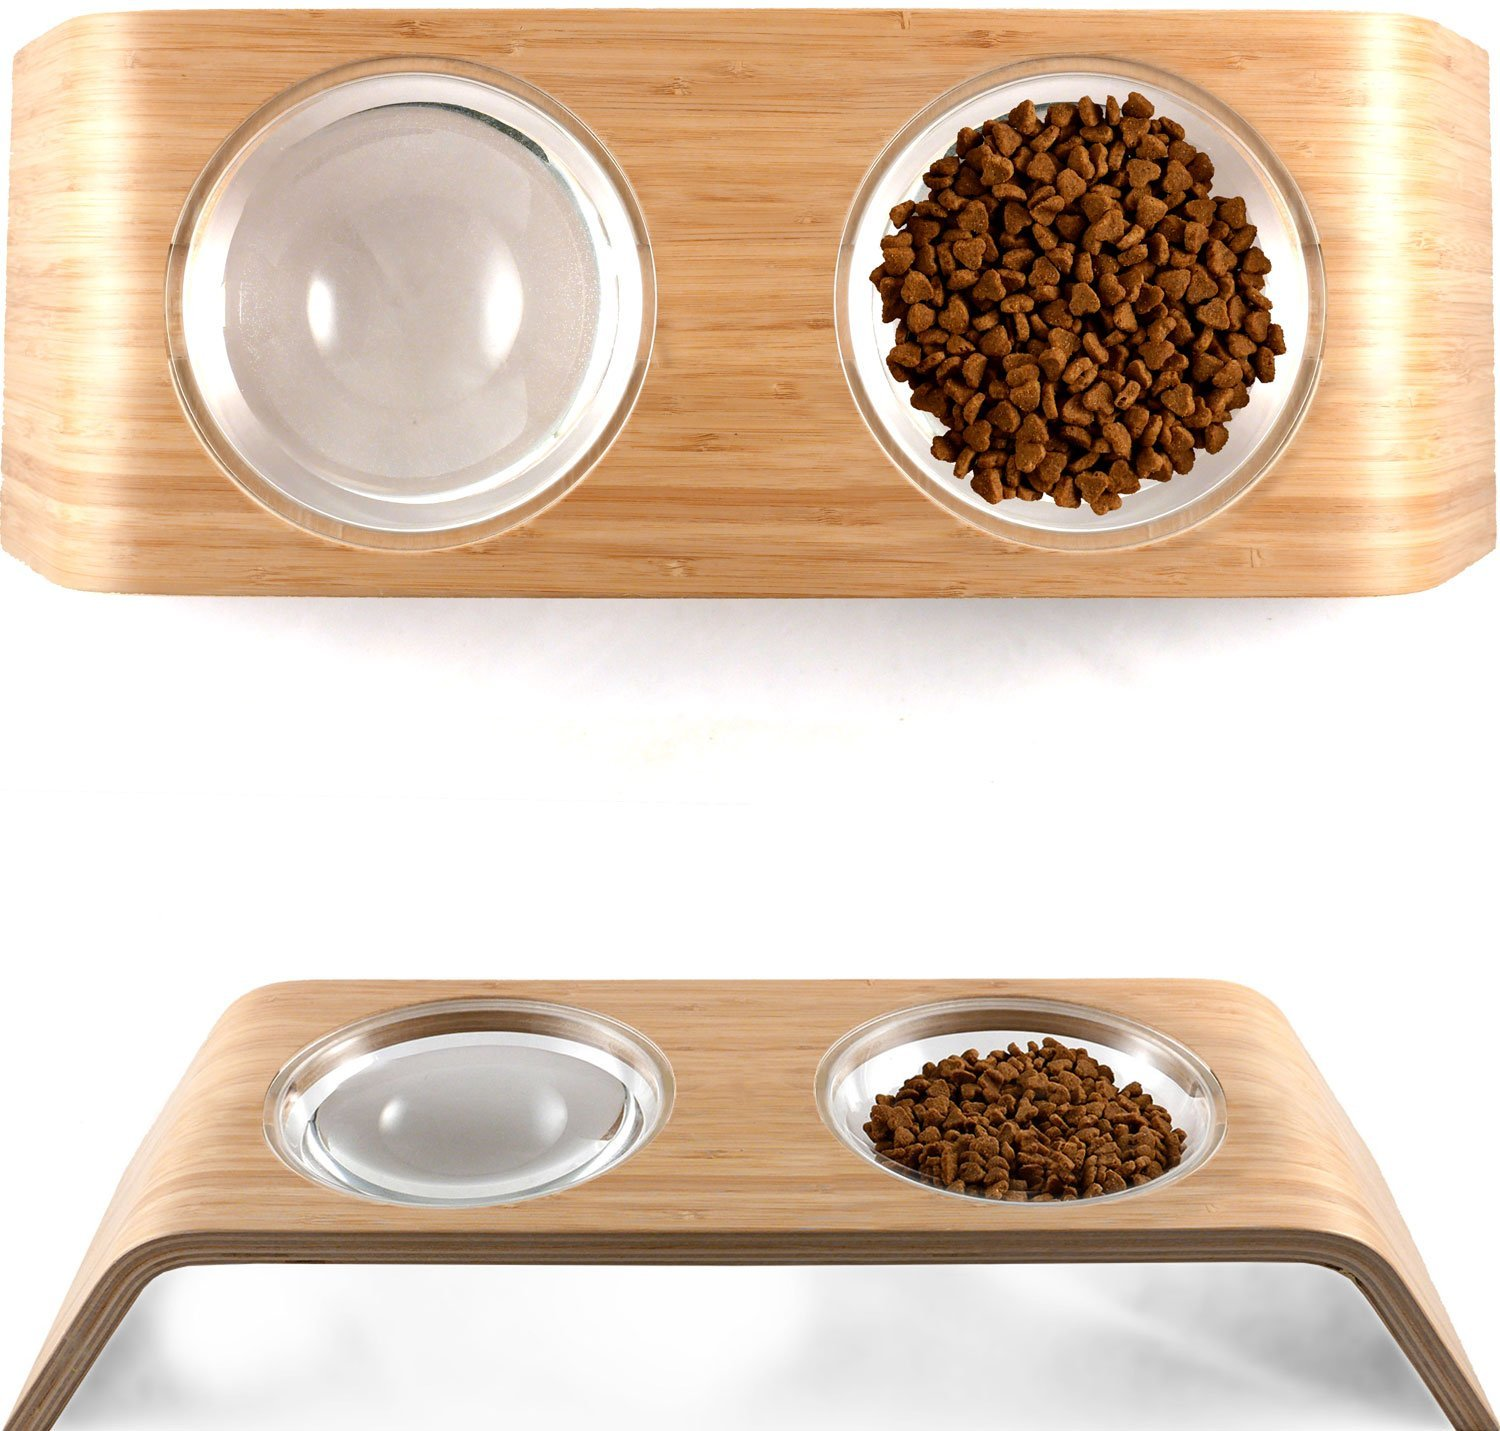 FOX & FERN Elevated Pet Feeder - Replacement Bowls - Acrylic by Relaxx (Image #3)